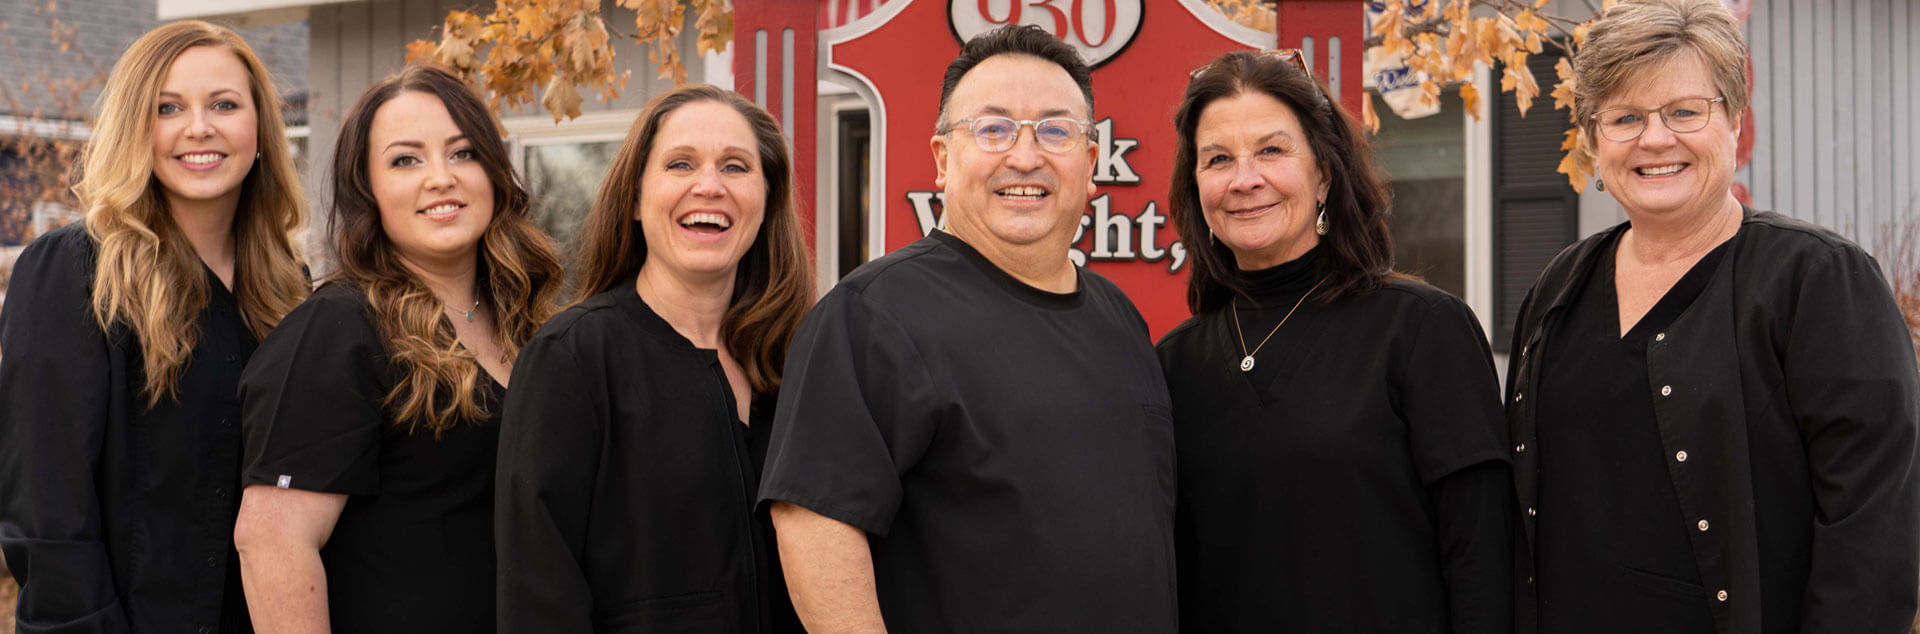 Dr. Mark Wright and his dental team